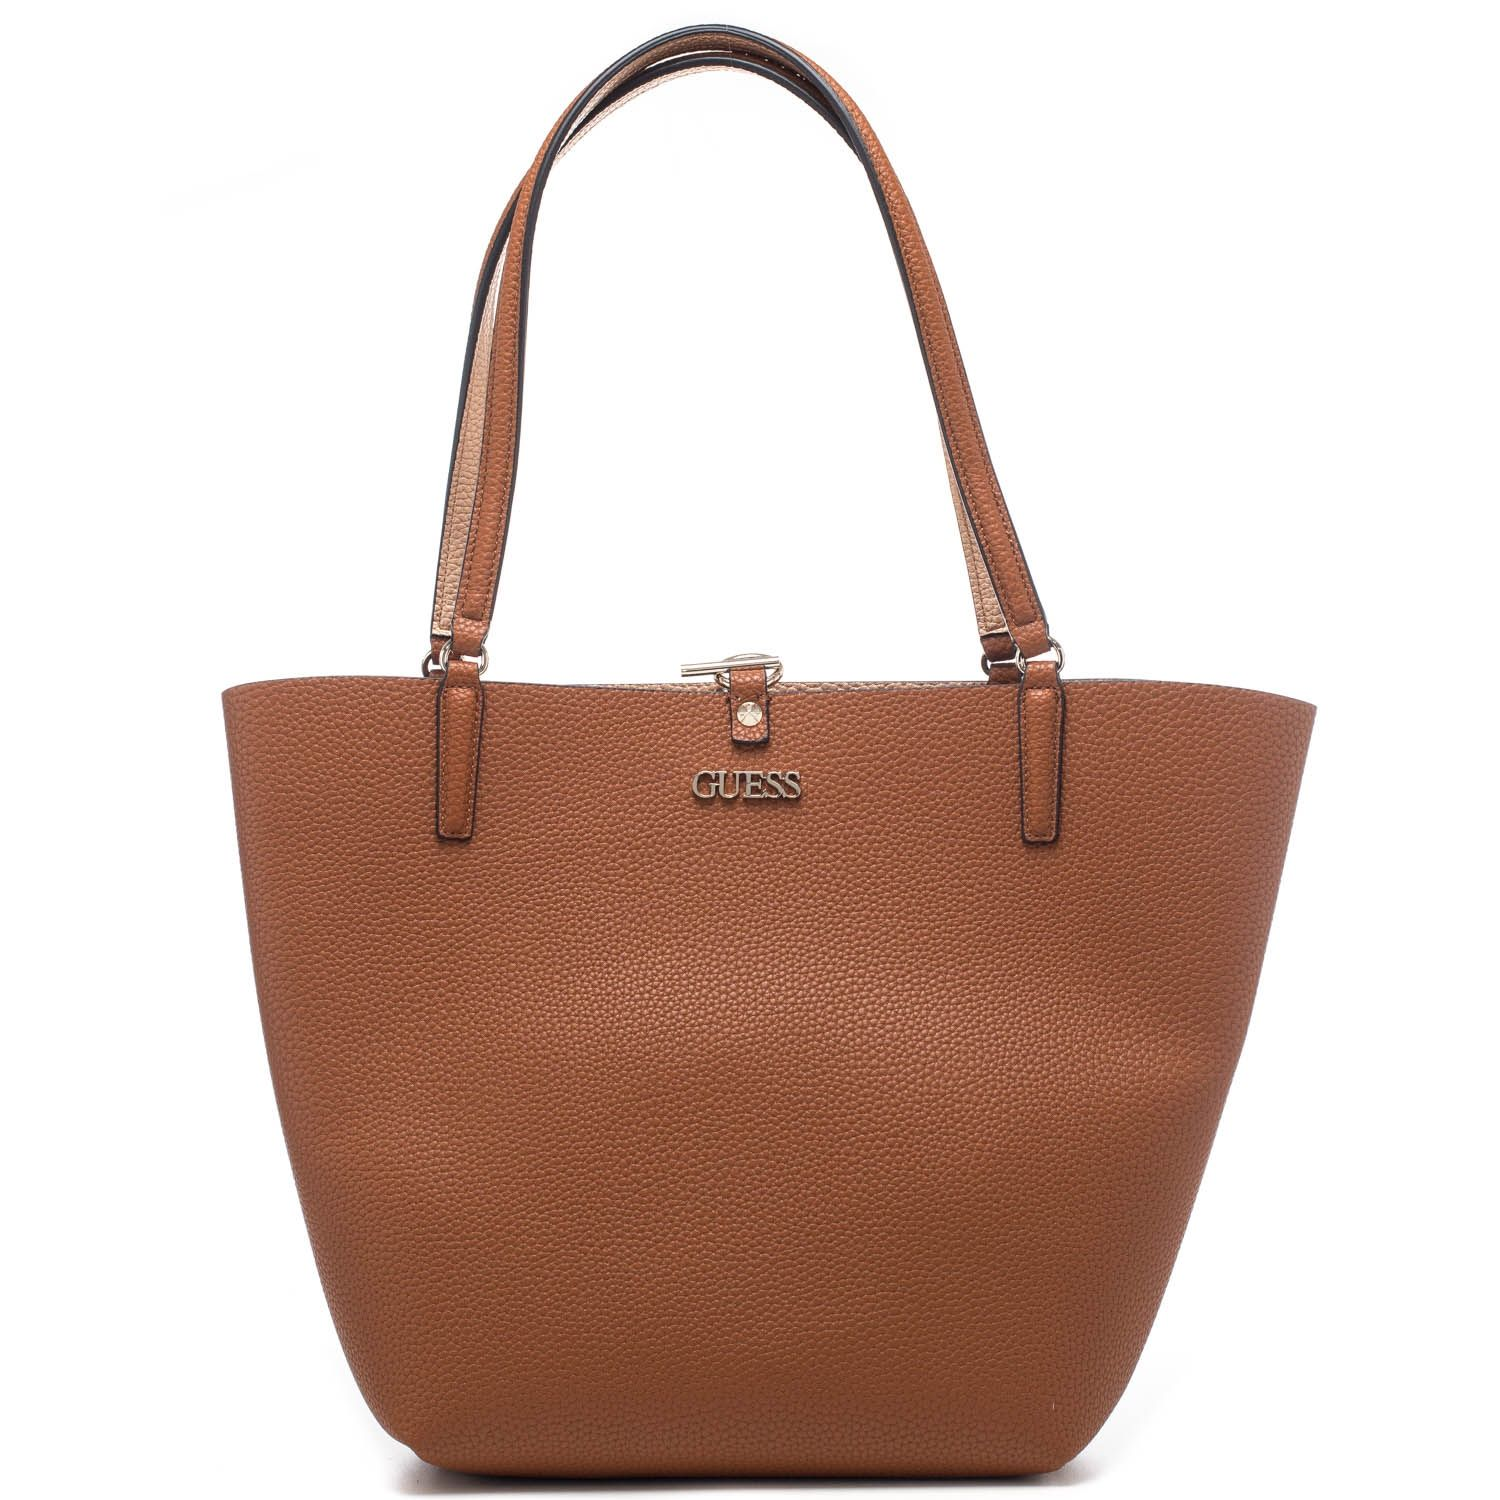 Borsa shopping donna Guess reversibile in ecopelle con pochette interna